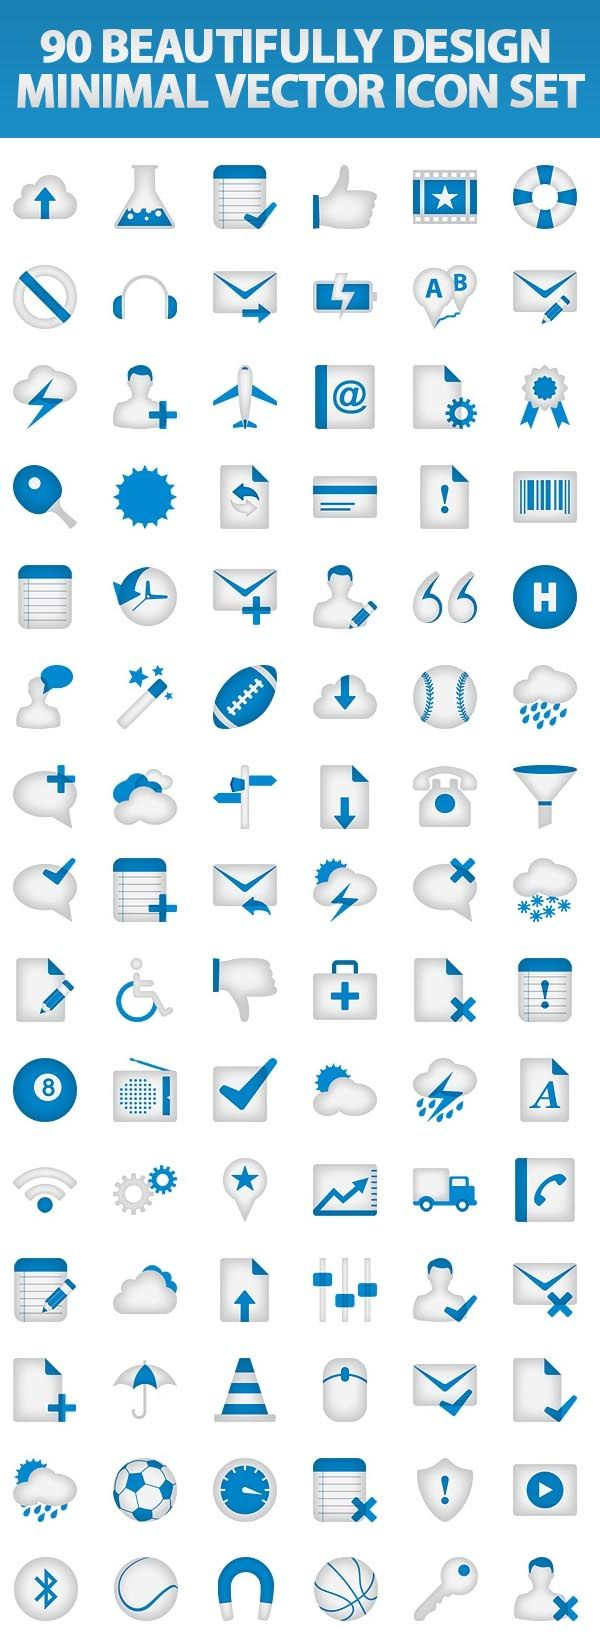 Today freebie is minimal vector icon set perfect to design Web apps interfaces.